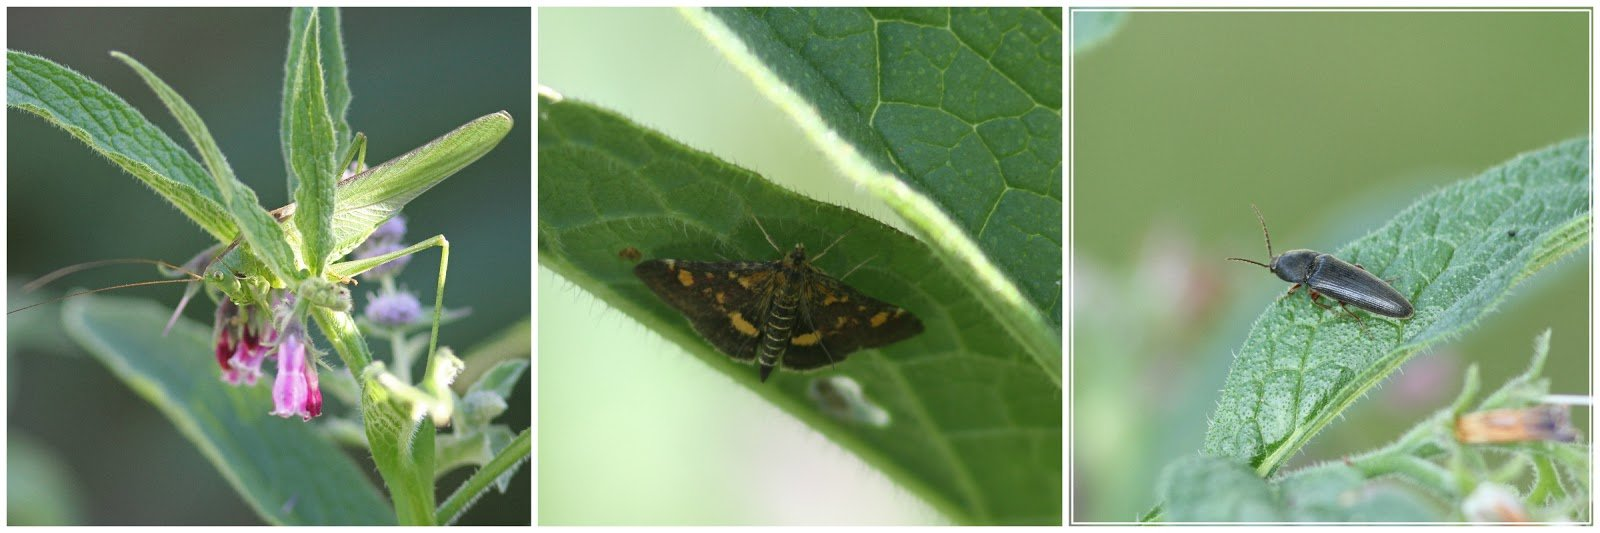 Photos of invertebrates on our Comfrey plants - by Peter Alfrey.